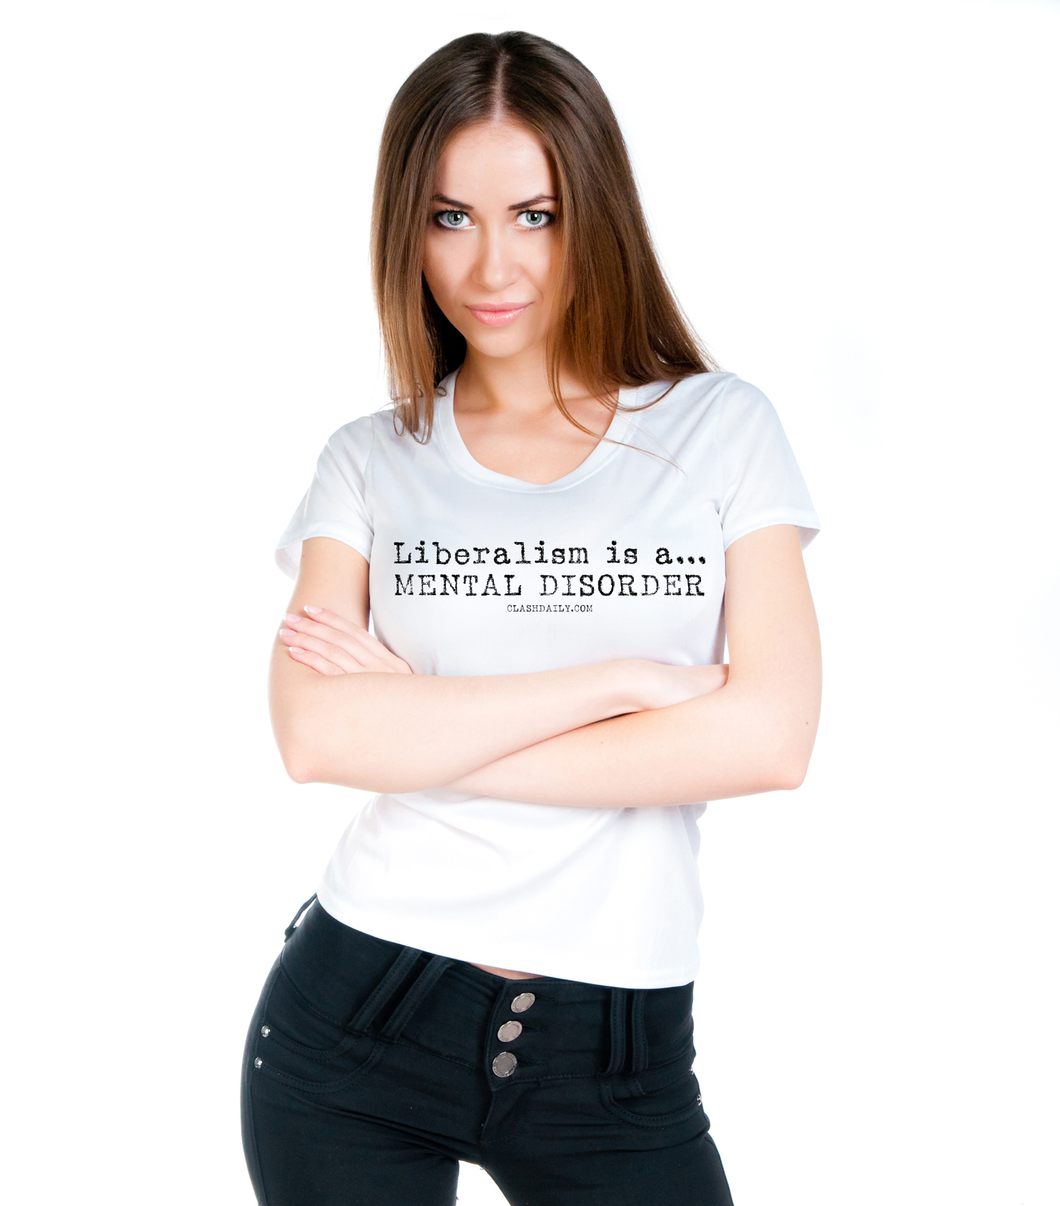 Liberalism is a Mental Disorder Women's T-Shirt (MADE IN THE USA)